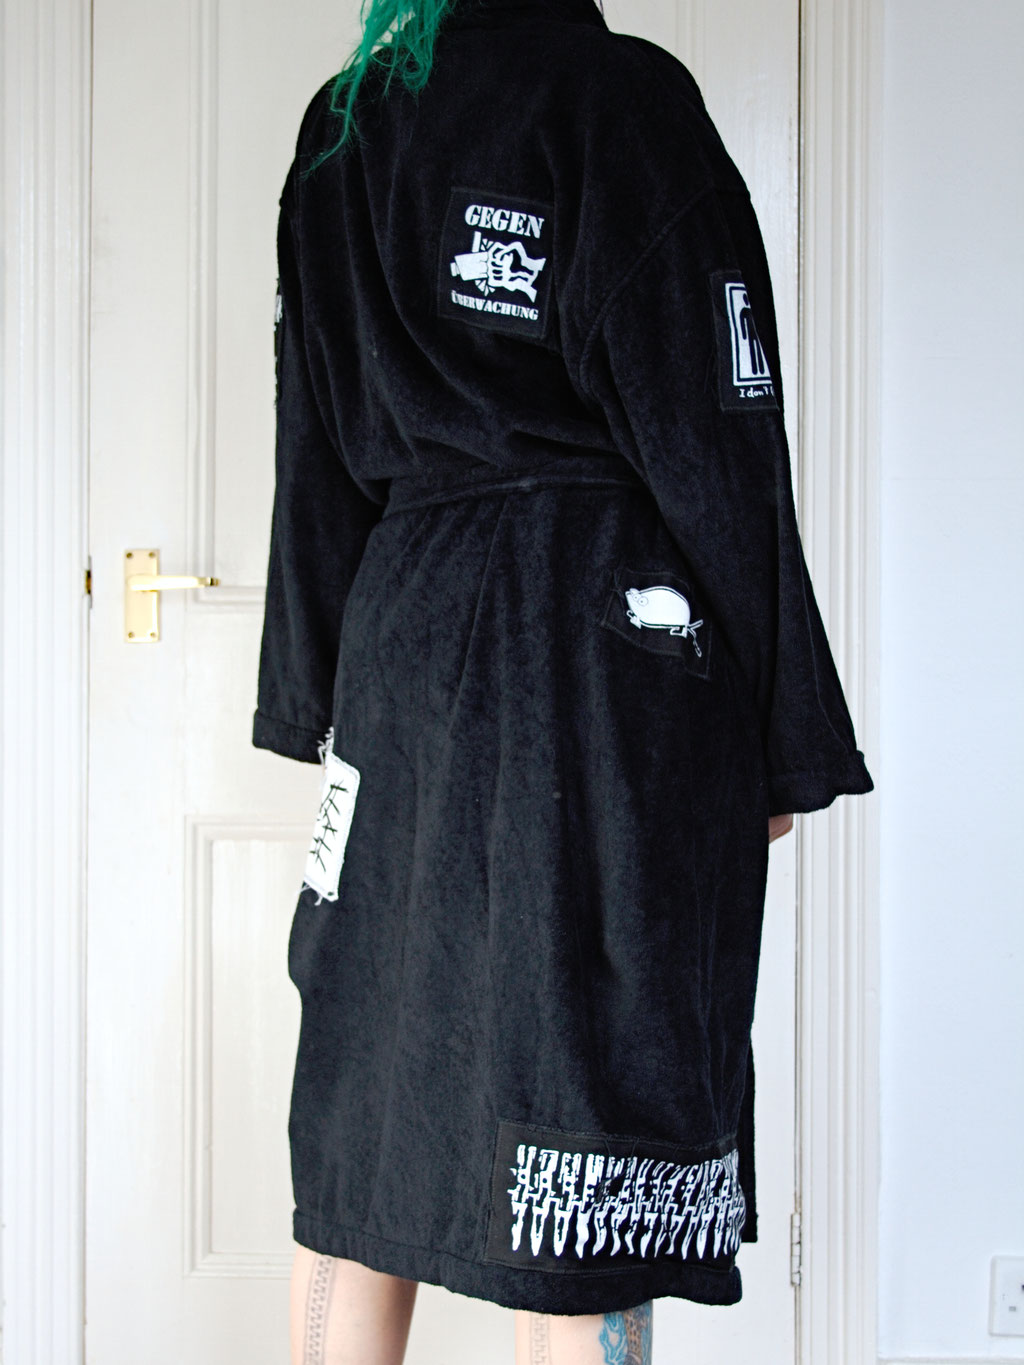 5 Unusual things that look better with patches - crust punk bathrobe back - Zebraspider Eco Anti-Fashion Blog